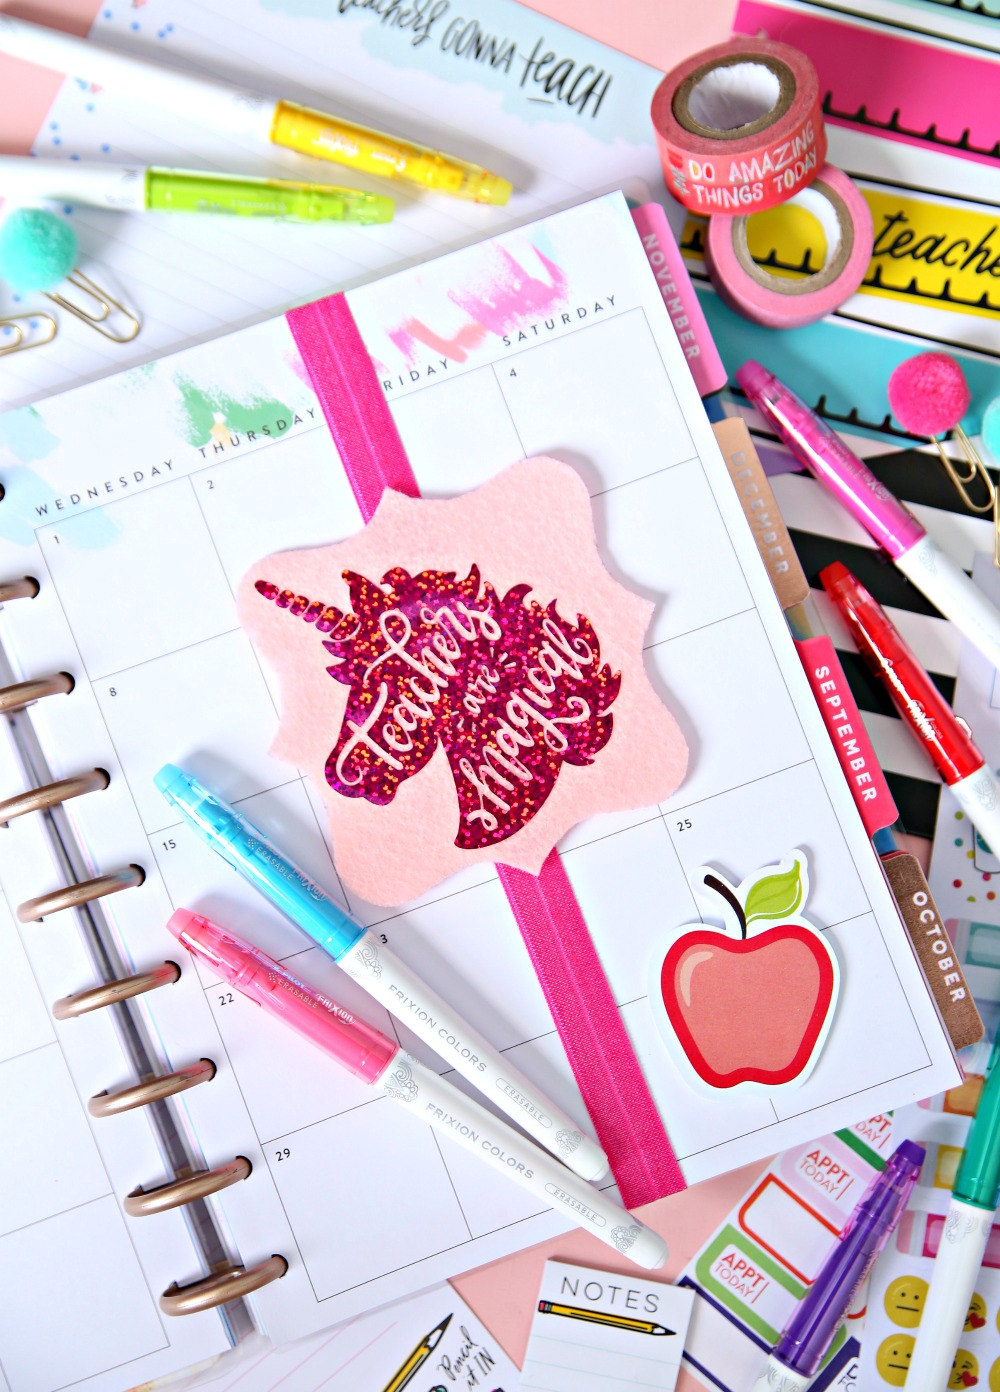 Planner Bookmarks Unicorn - Elastic Bookmarks - Every teacher needs a planner and now they can add these cute Planner Bookmarks to make it extra special!